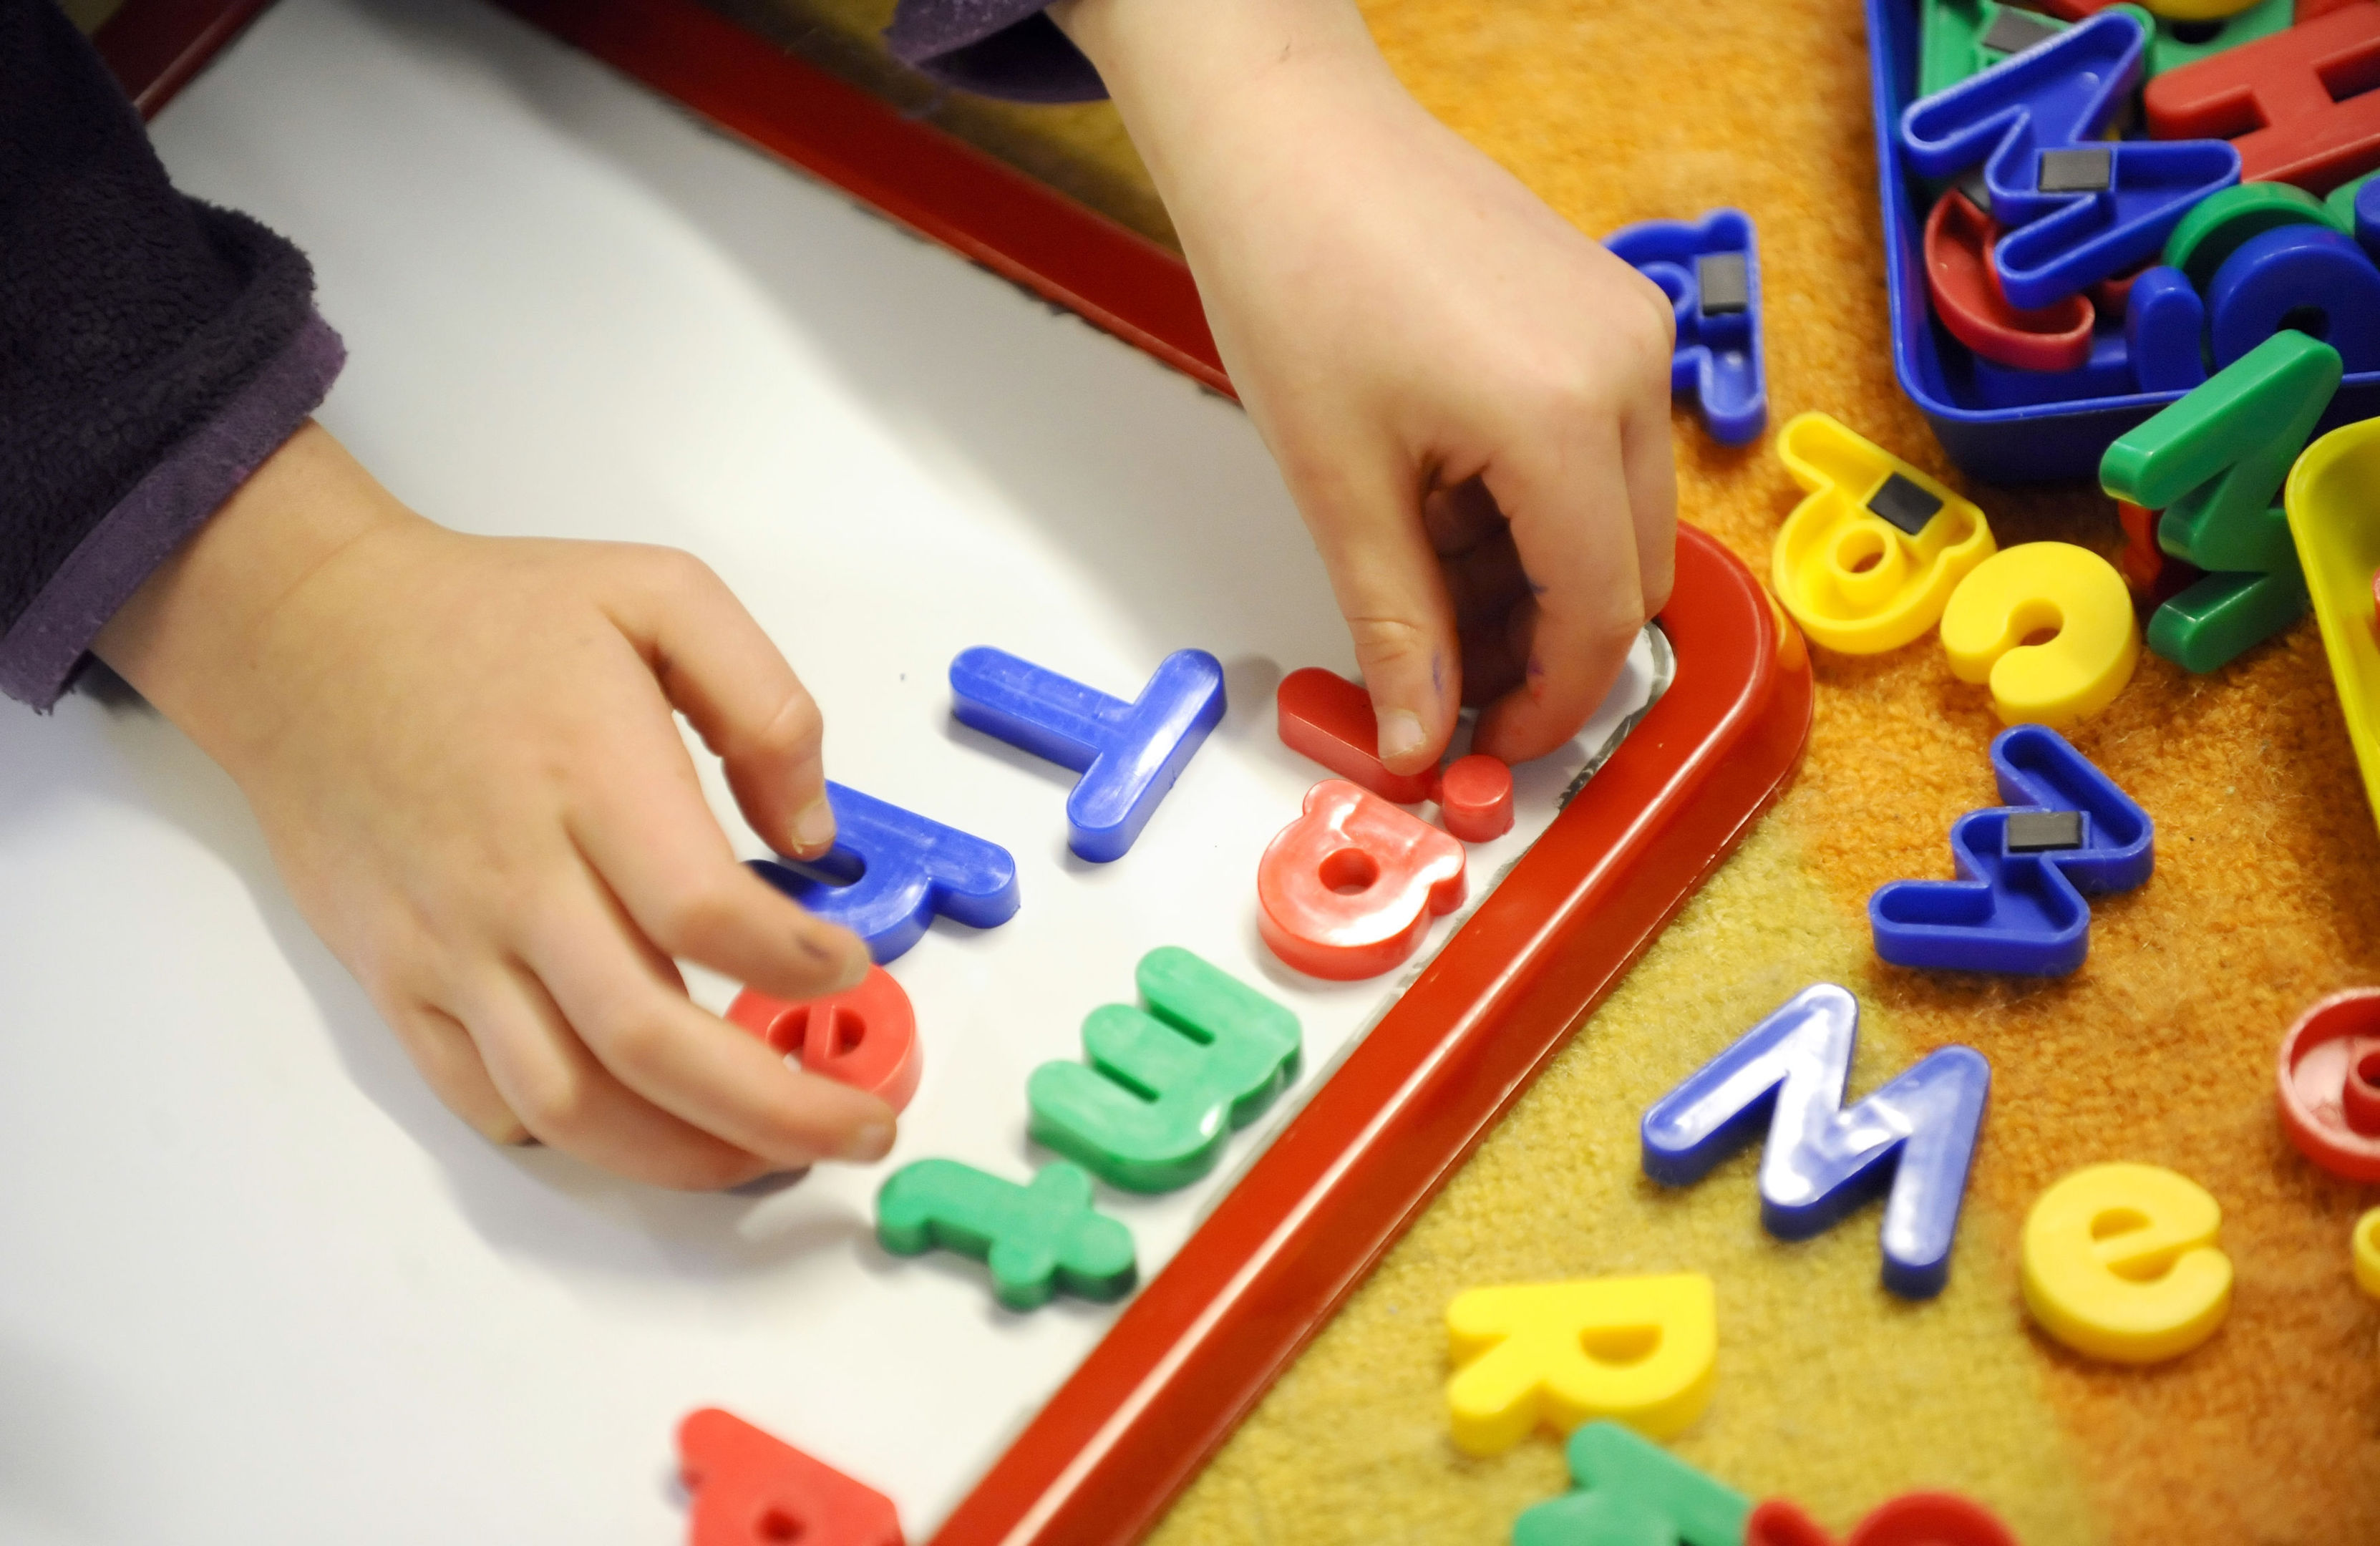 A regulator boss has accused the Scottish Government of undervaluing the childcare profession.